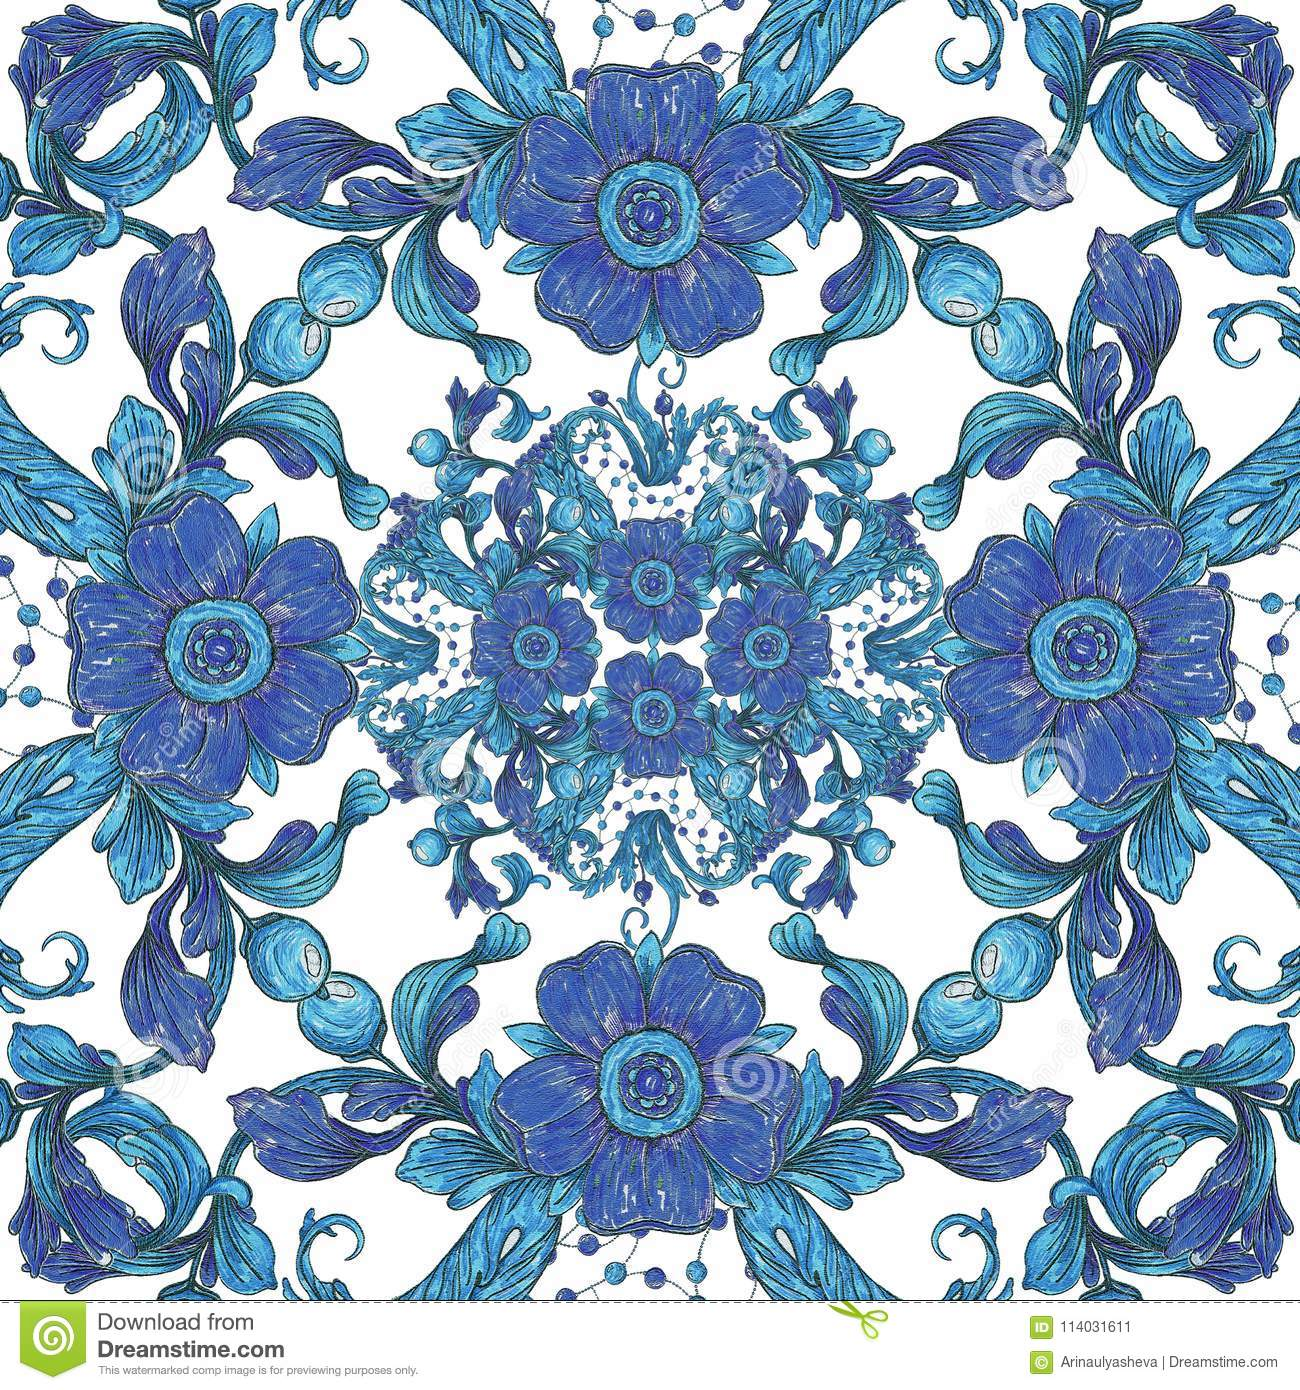 Floral Tile Wallpaper Baroque Blue And White Ornament Stock